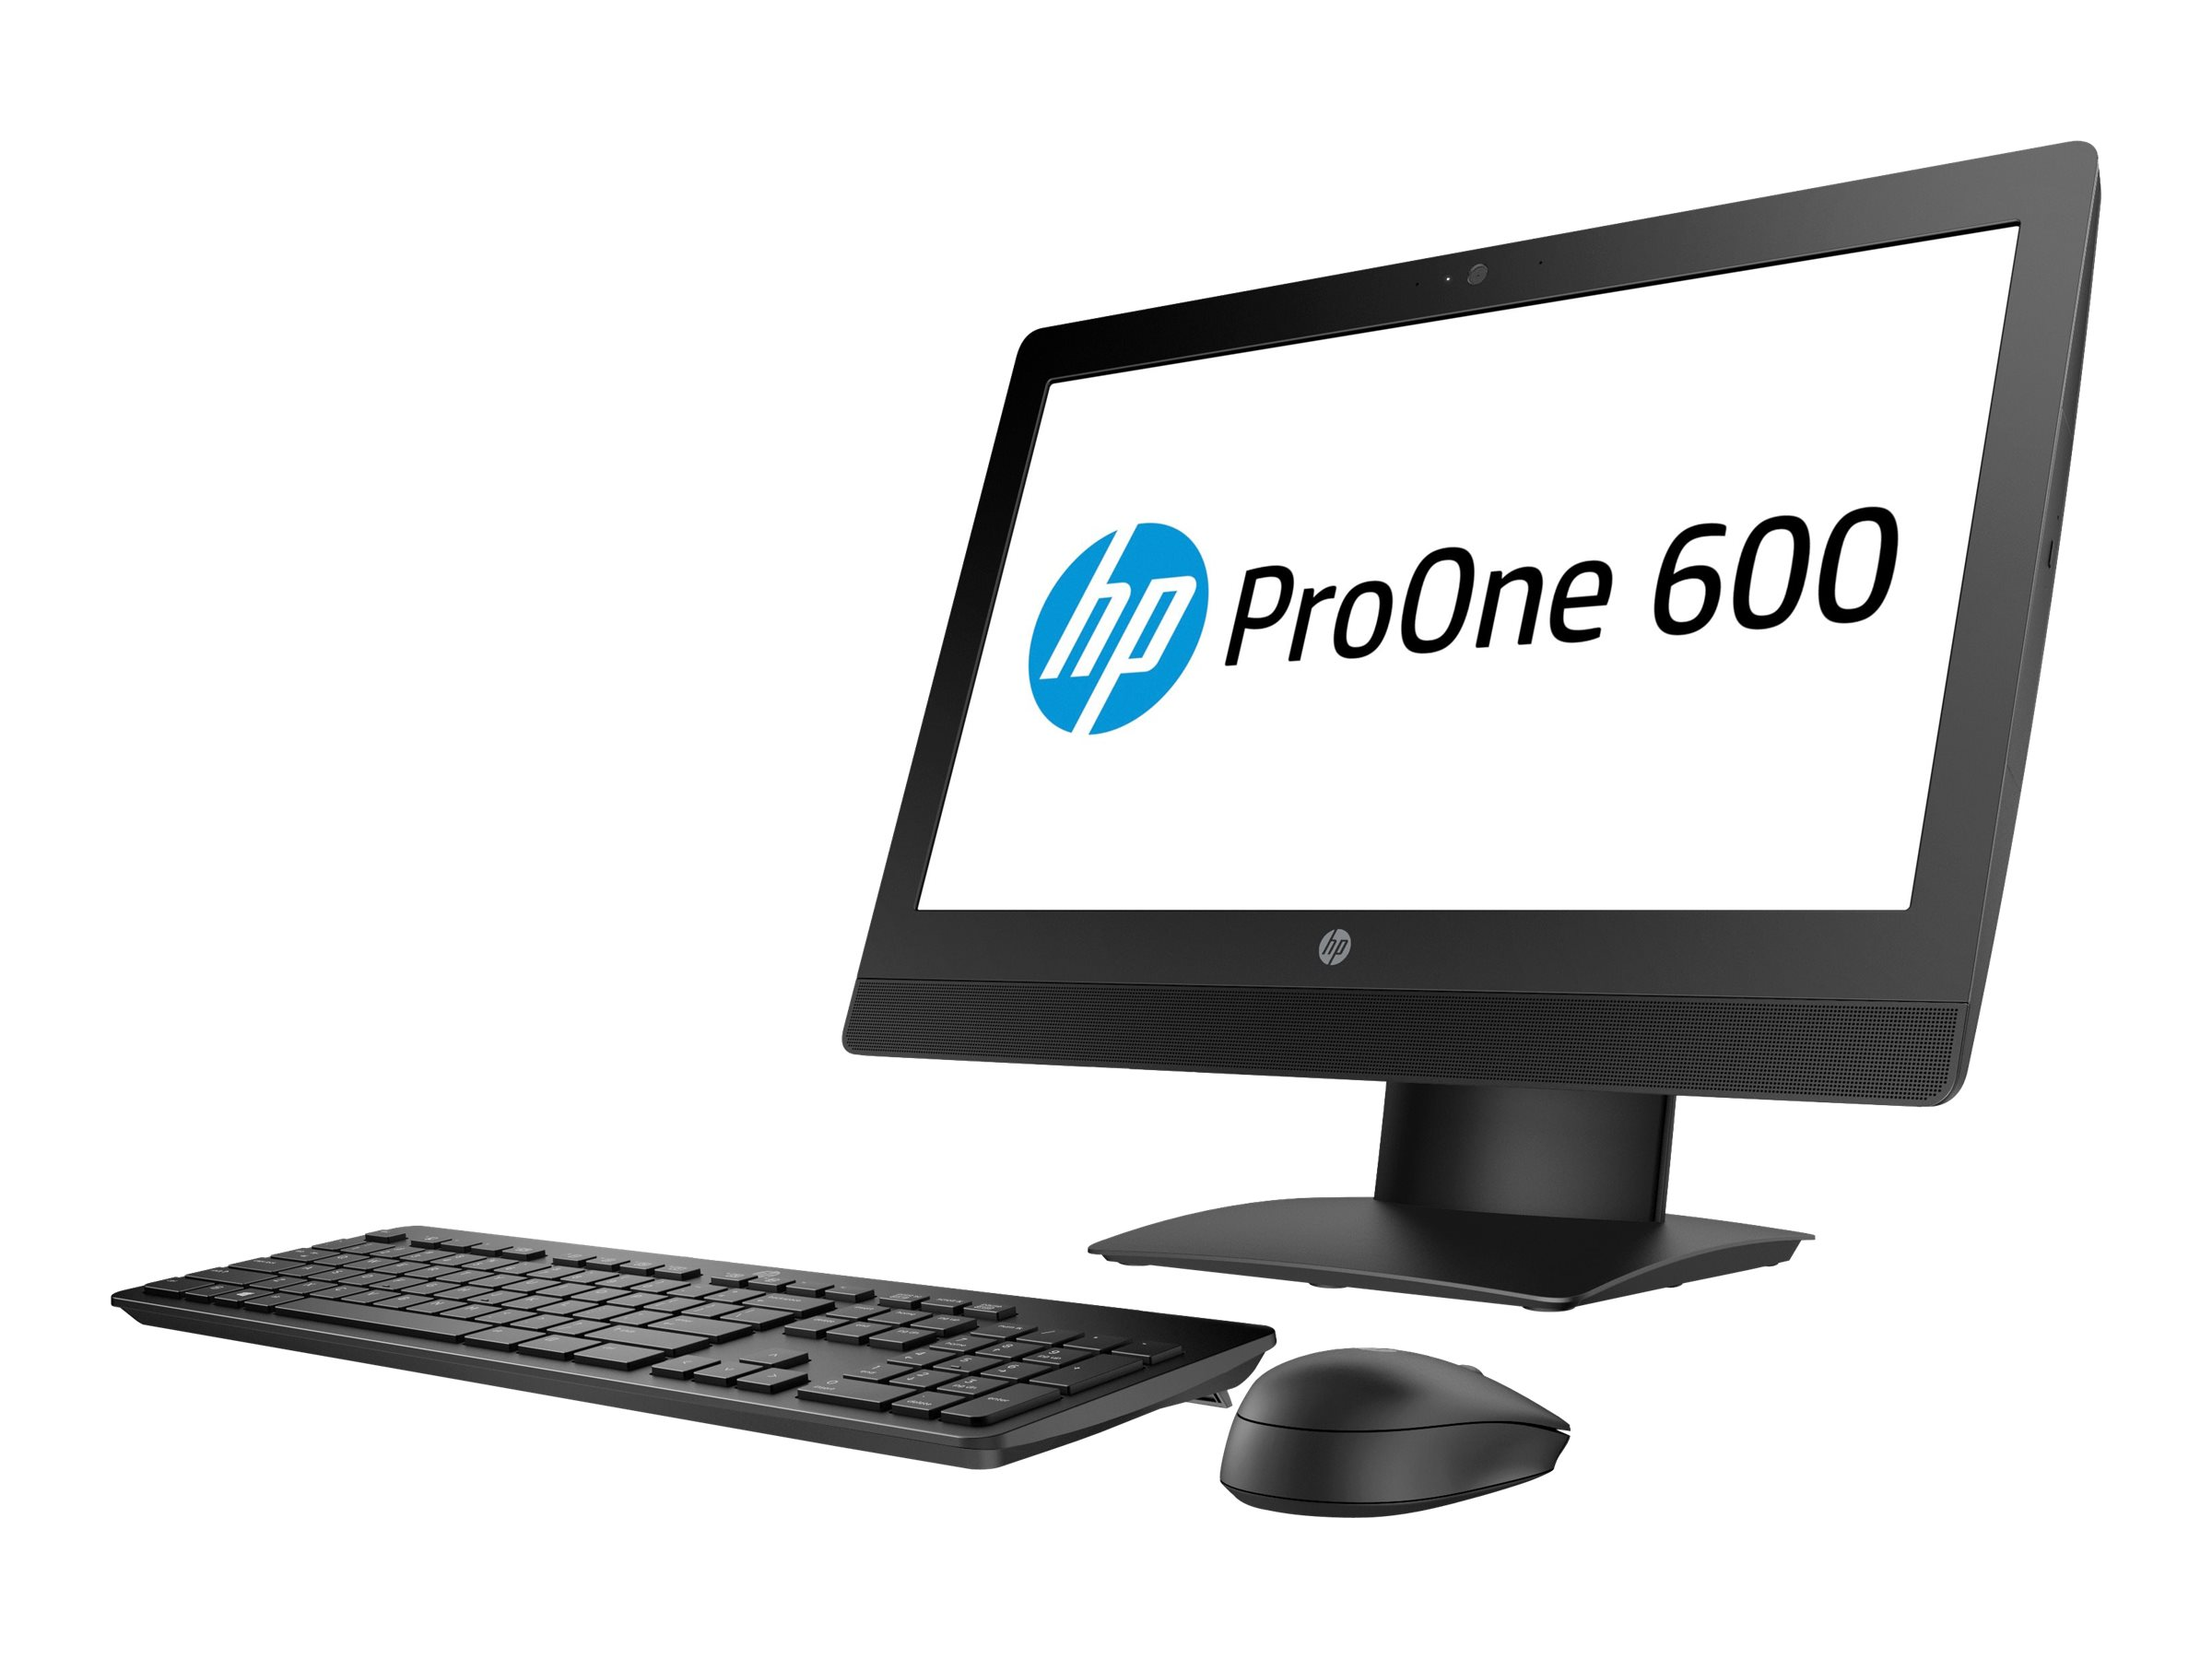 HP ProOne 600 G3 - All-in-One (Komplettlösung) - 1 x Core i5 7500 / 3.4 GHz - RAM 8 GB - HDD 1 TB - DVD-Writer